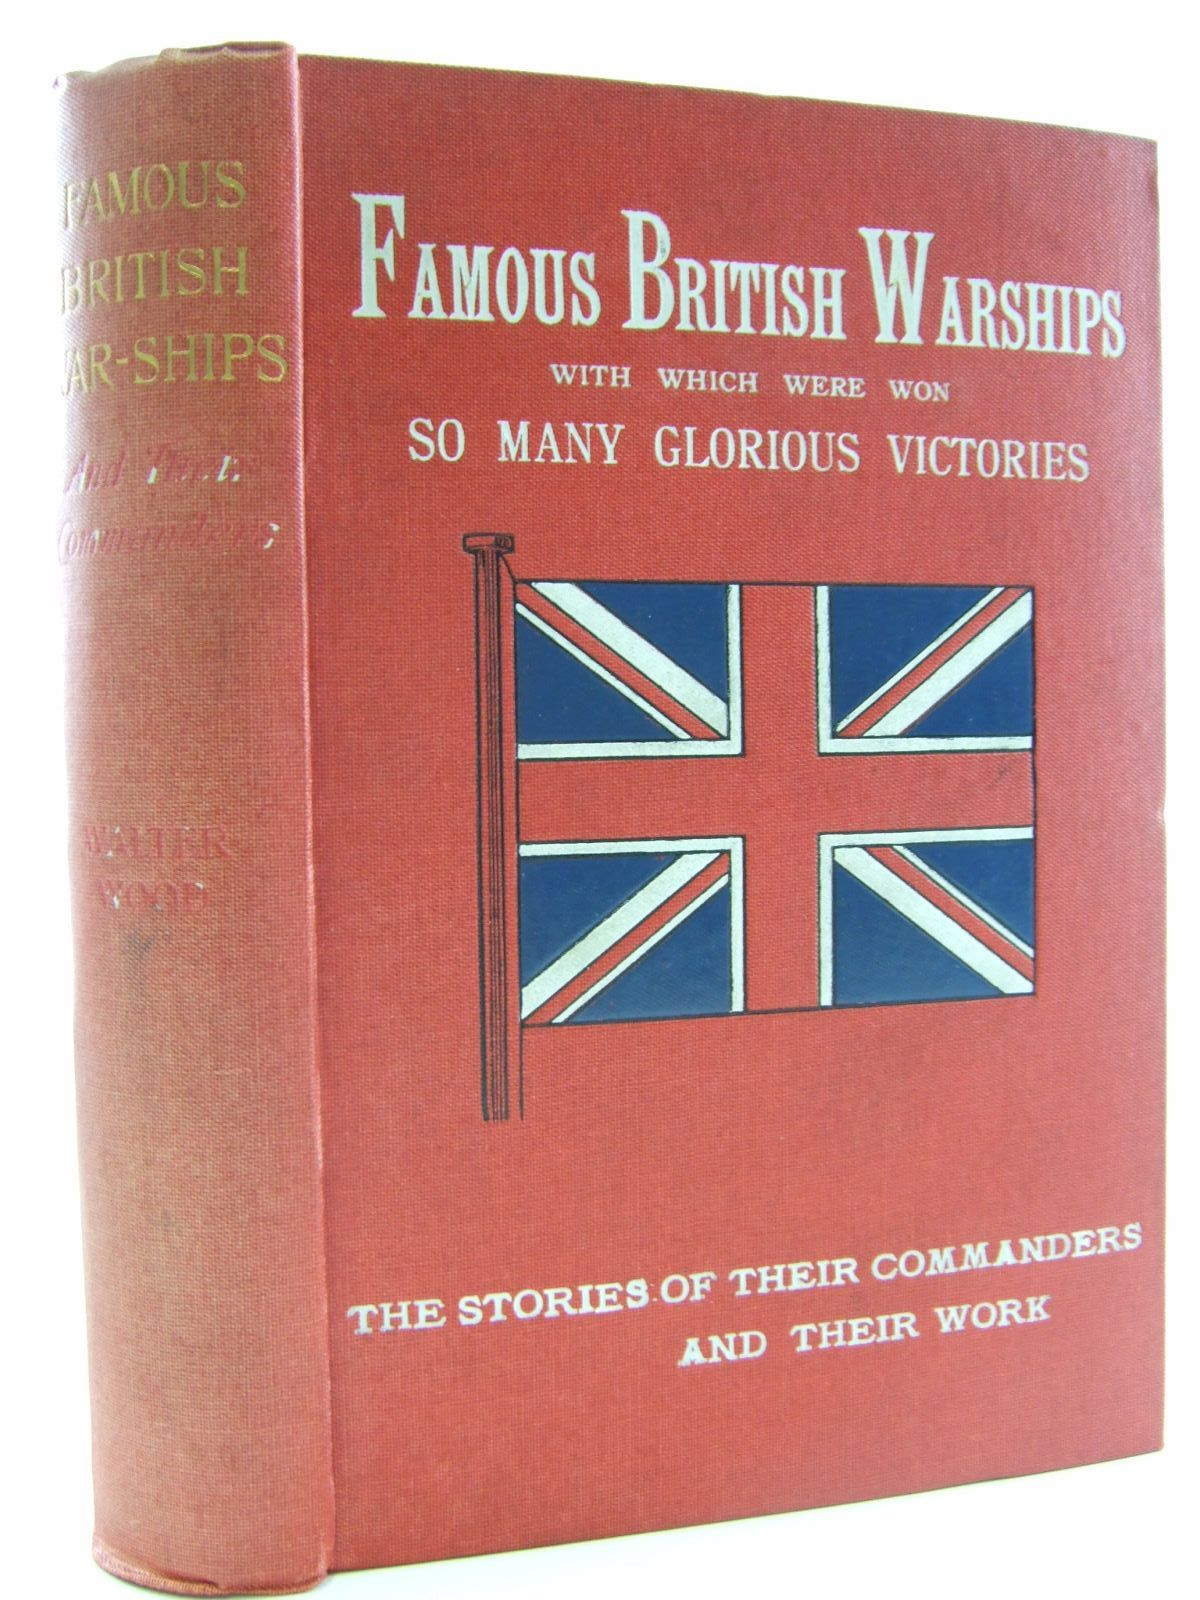 Photo of FAMOUS BRITISH WAR-SHIPS AND THEIR COMMANDERS written by Wood, Walter published by Hurst & Blackett Ltd. (STOCK CODE: 1707495)  for sale by Stella & Rose's Books